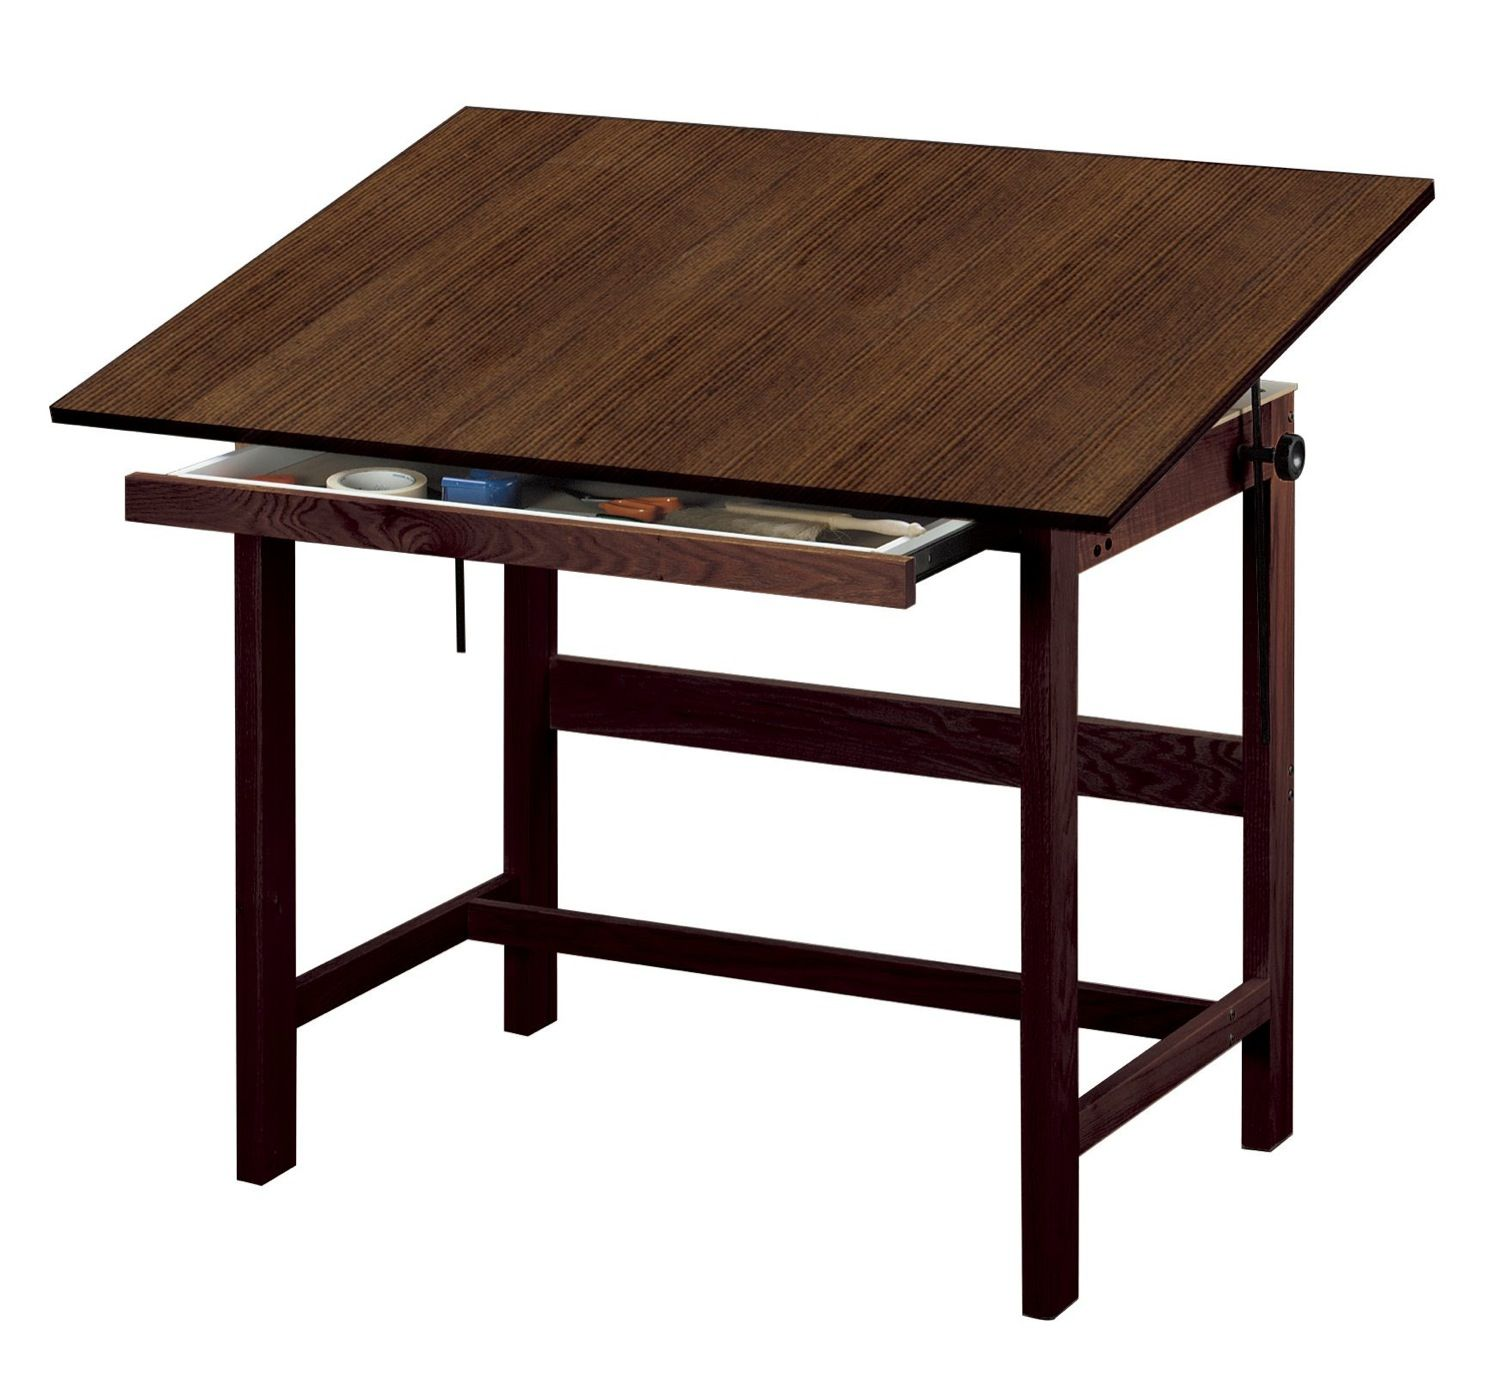 Wood drafting table plans - Save On Discount Alvin Titan Drafting Table With Drawer Walnut Woodgrain Melamine Top More